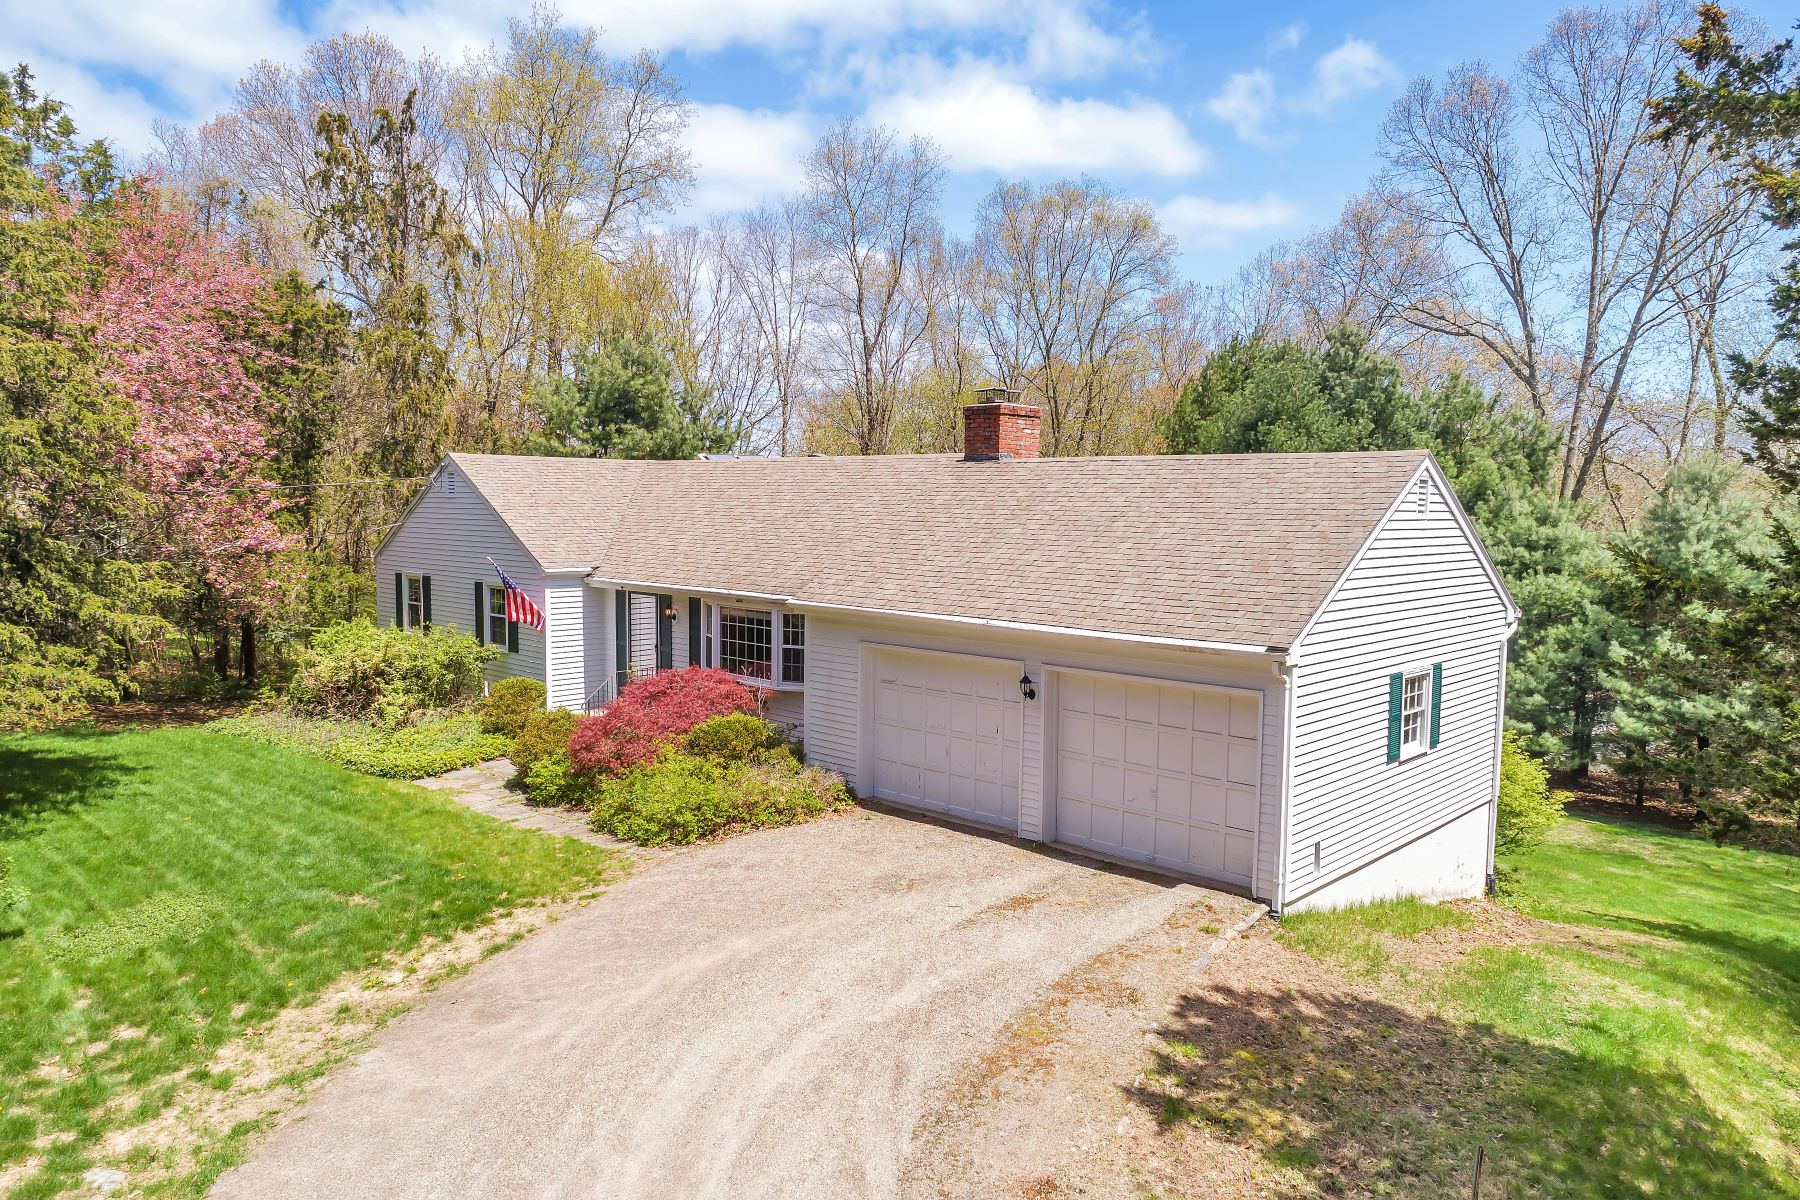 Single Family Homes for Sale at Cute Ranch Waiting for Your Finishing Touches 23 Wildwood Drive Old Lyme, Connecticut 06371 United States